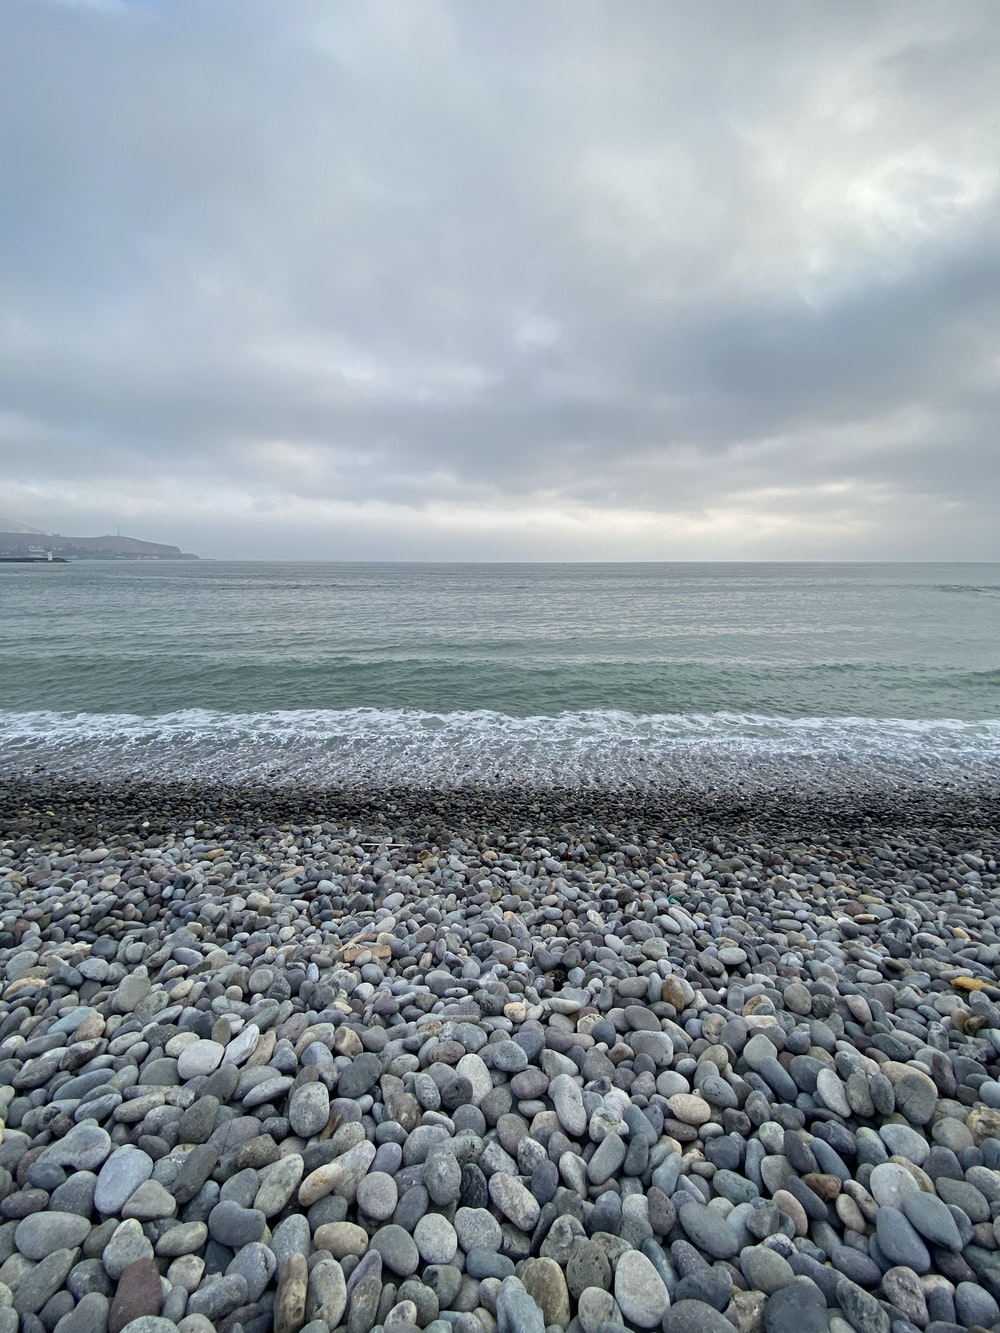 gray and white pebbles on seashore under cloudy sky during daytime